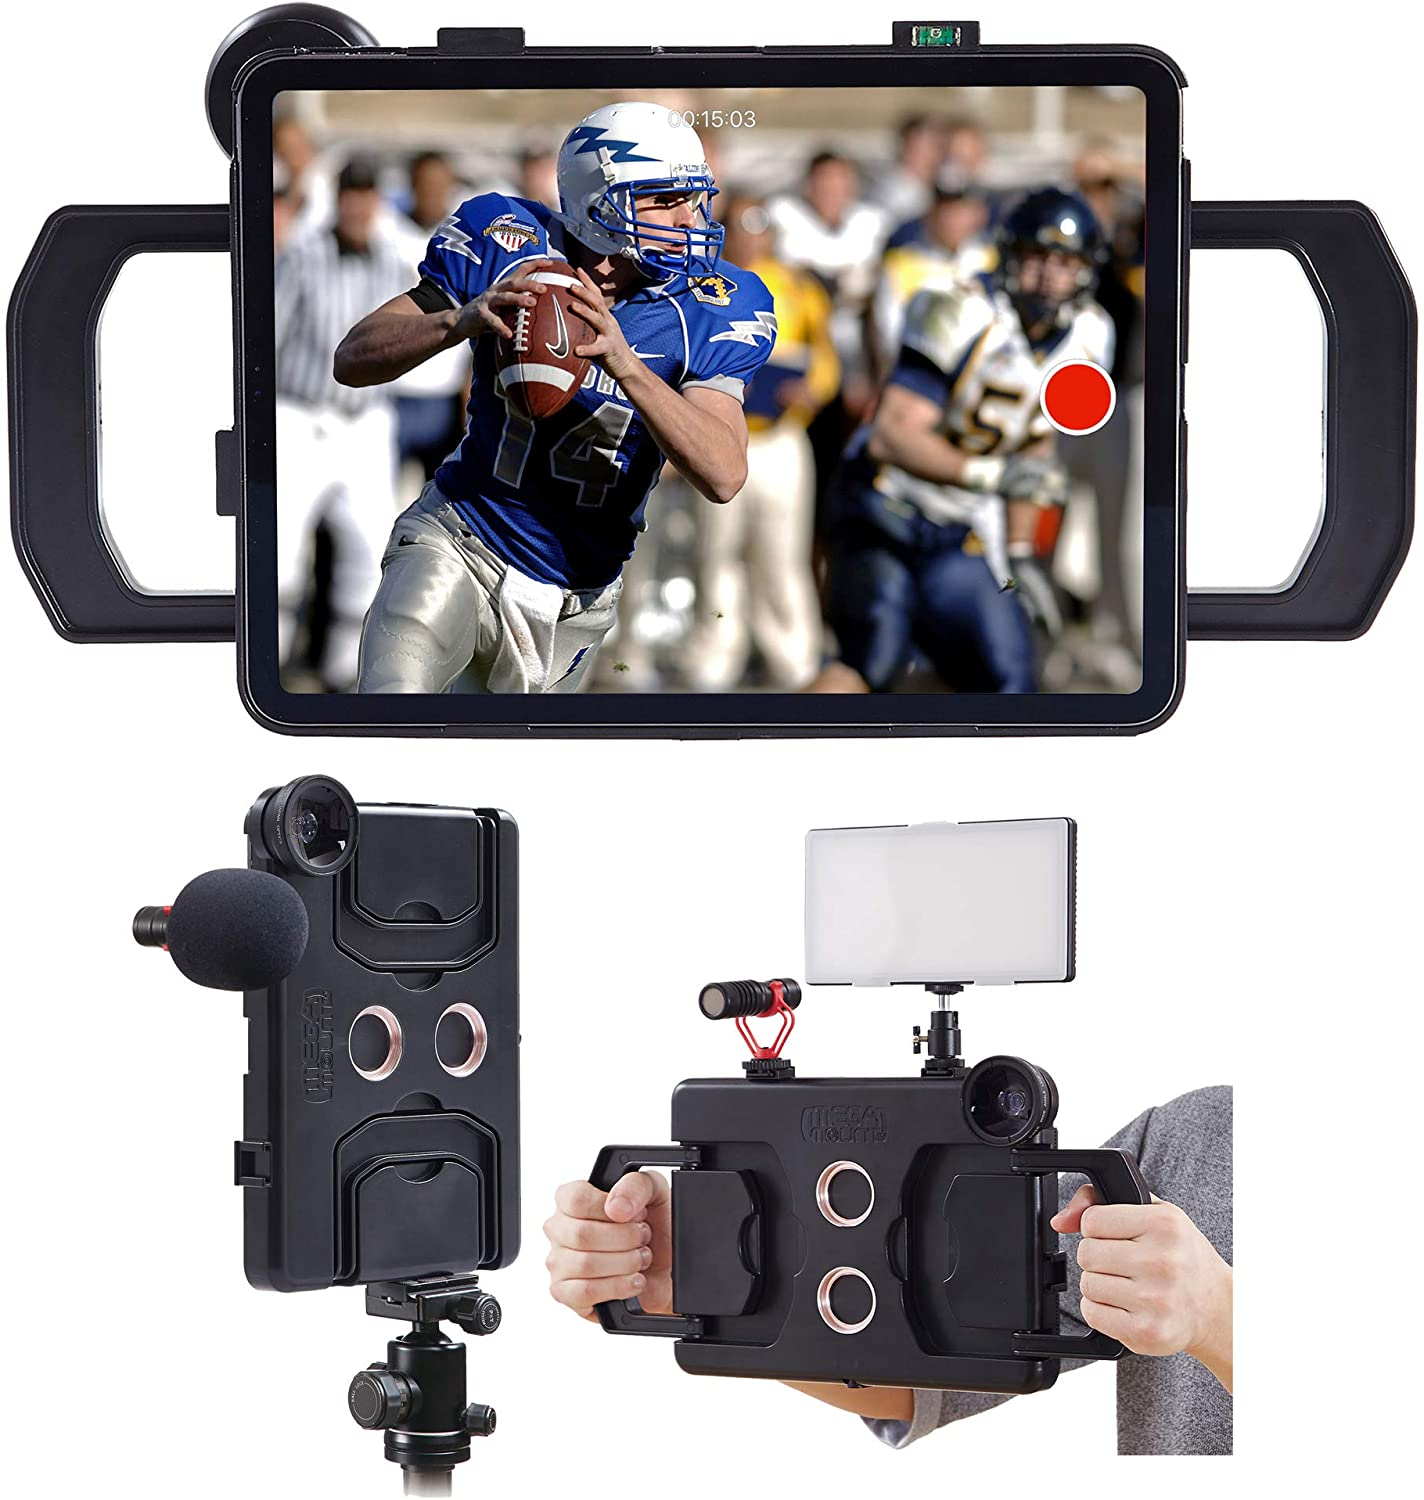 MegaMount Multimedia Rig Case Video Stabilizer for Apple iPad 10.2 inch [Current 7th Gen Only] Easily Attach Lenses, Lights, Microphones. Great for Live Conferencing, Video Recording, Mounts on Tripod